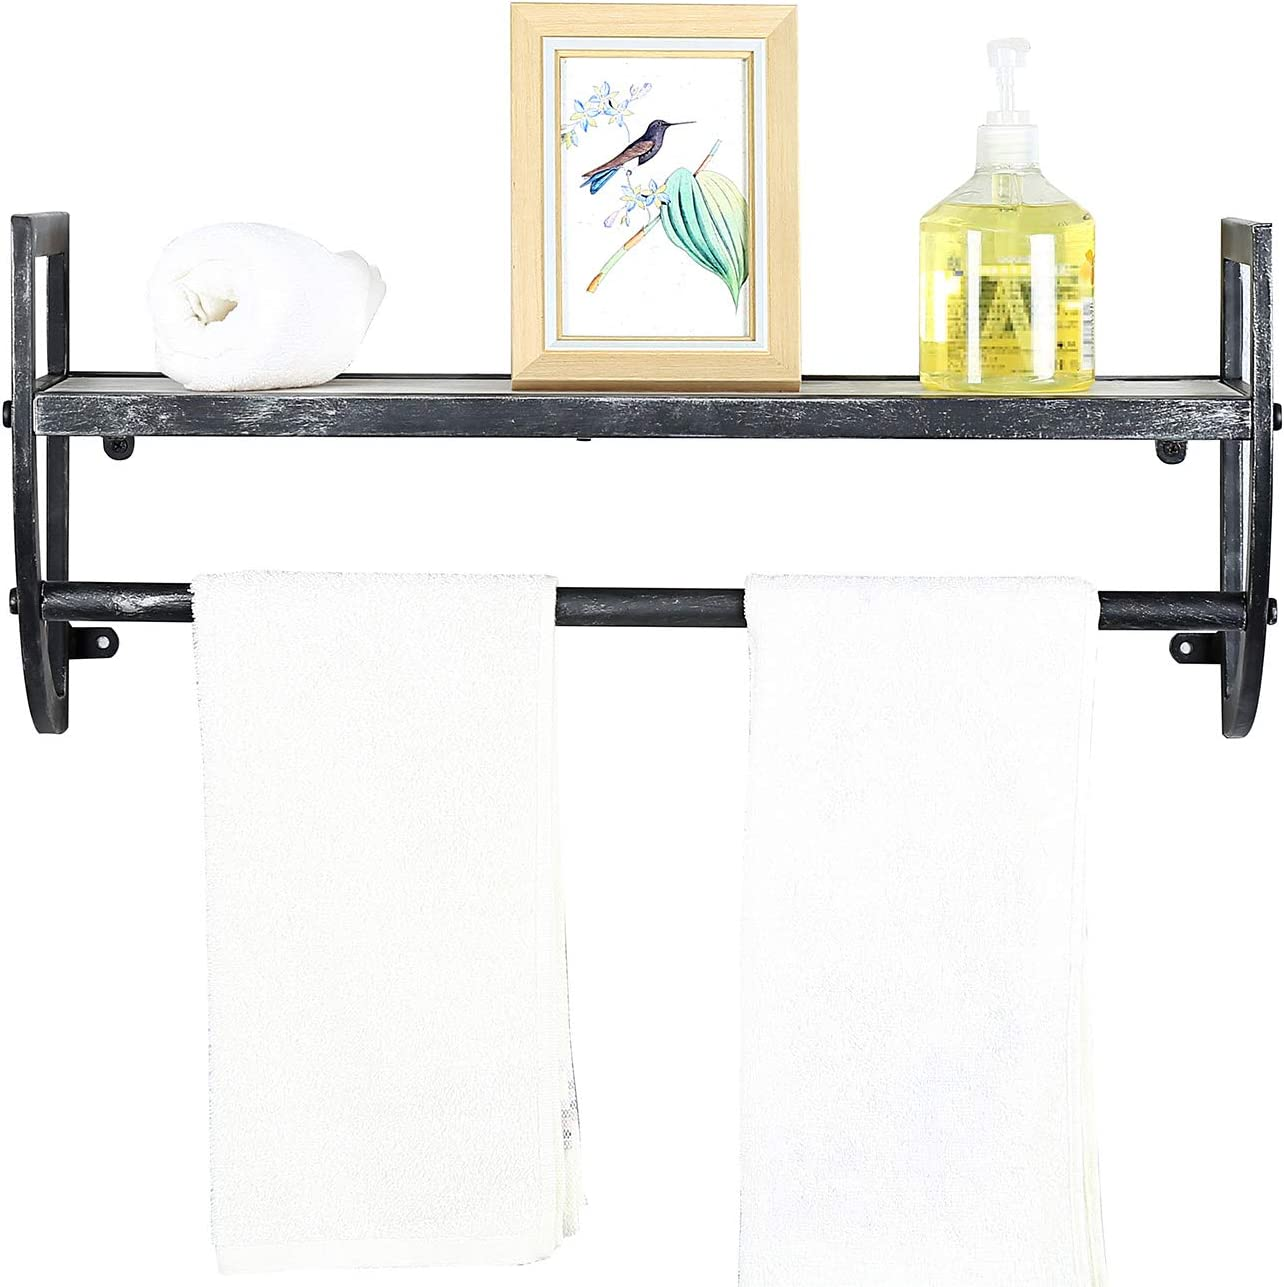 Floating Wall Shelves with Towel Bar,Towel Racks for Bathroom: Kitchen & Dining